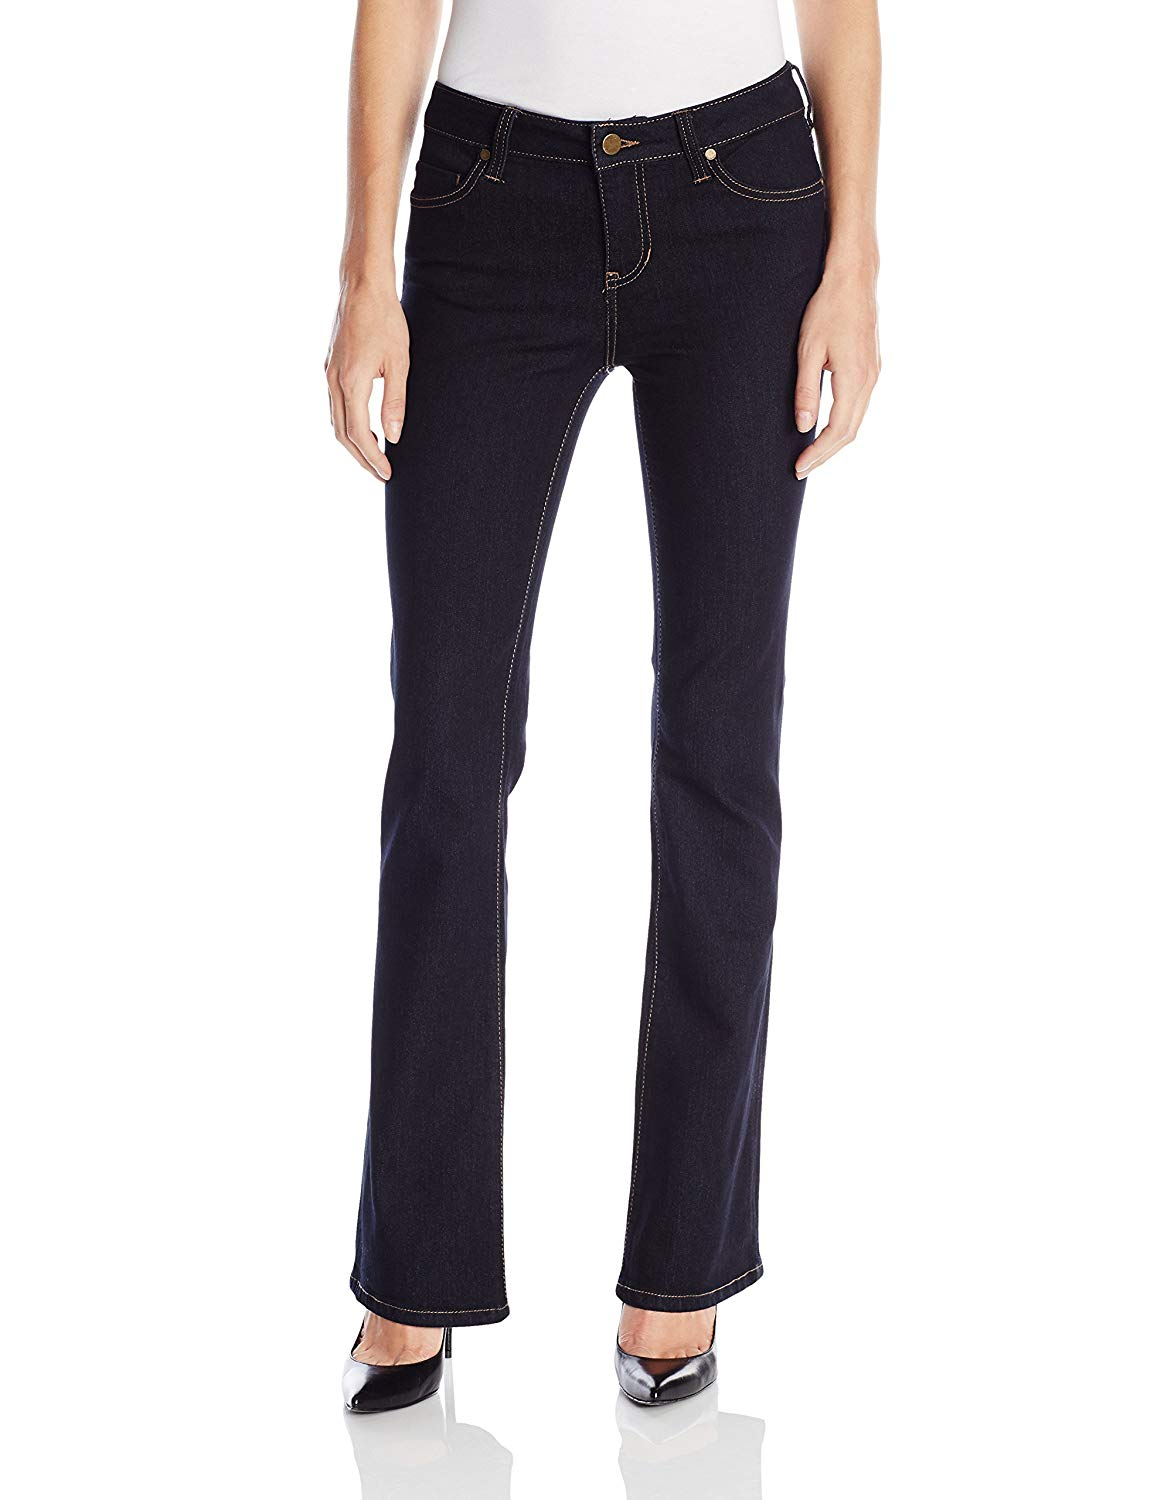 Liverpool Jeans Company Women's Liverpool Lucy Bootcut 5 Pocket Mid Rise Denim Jean